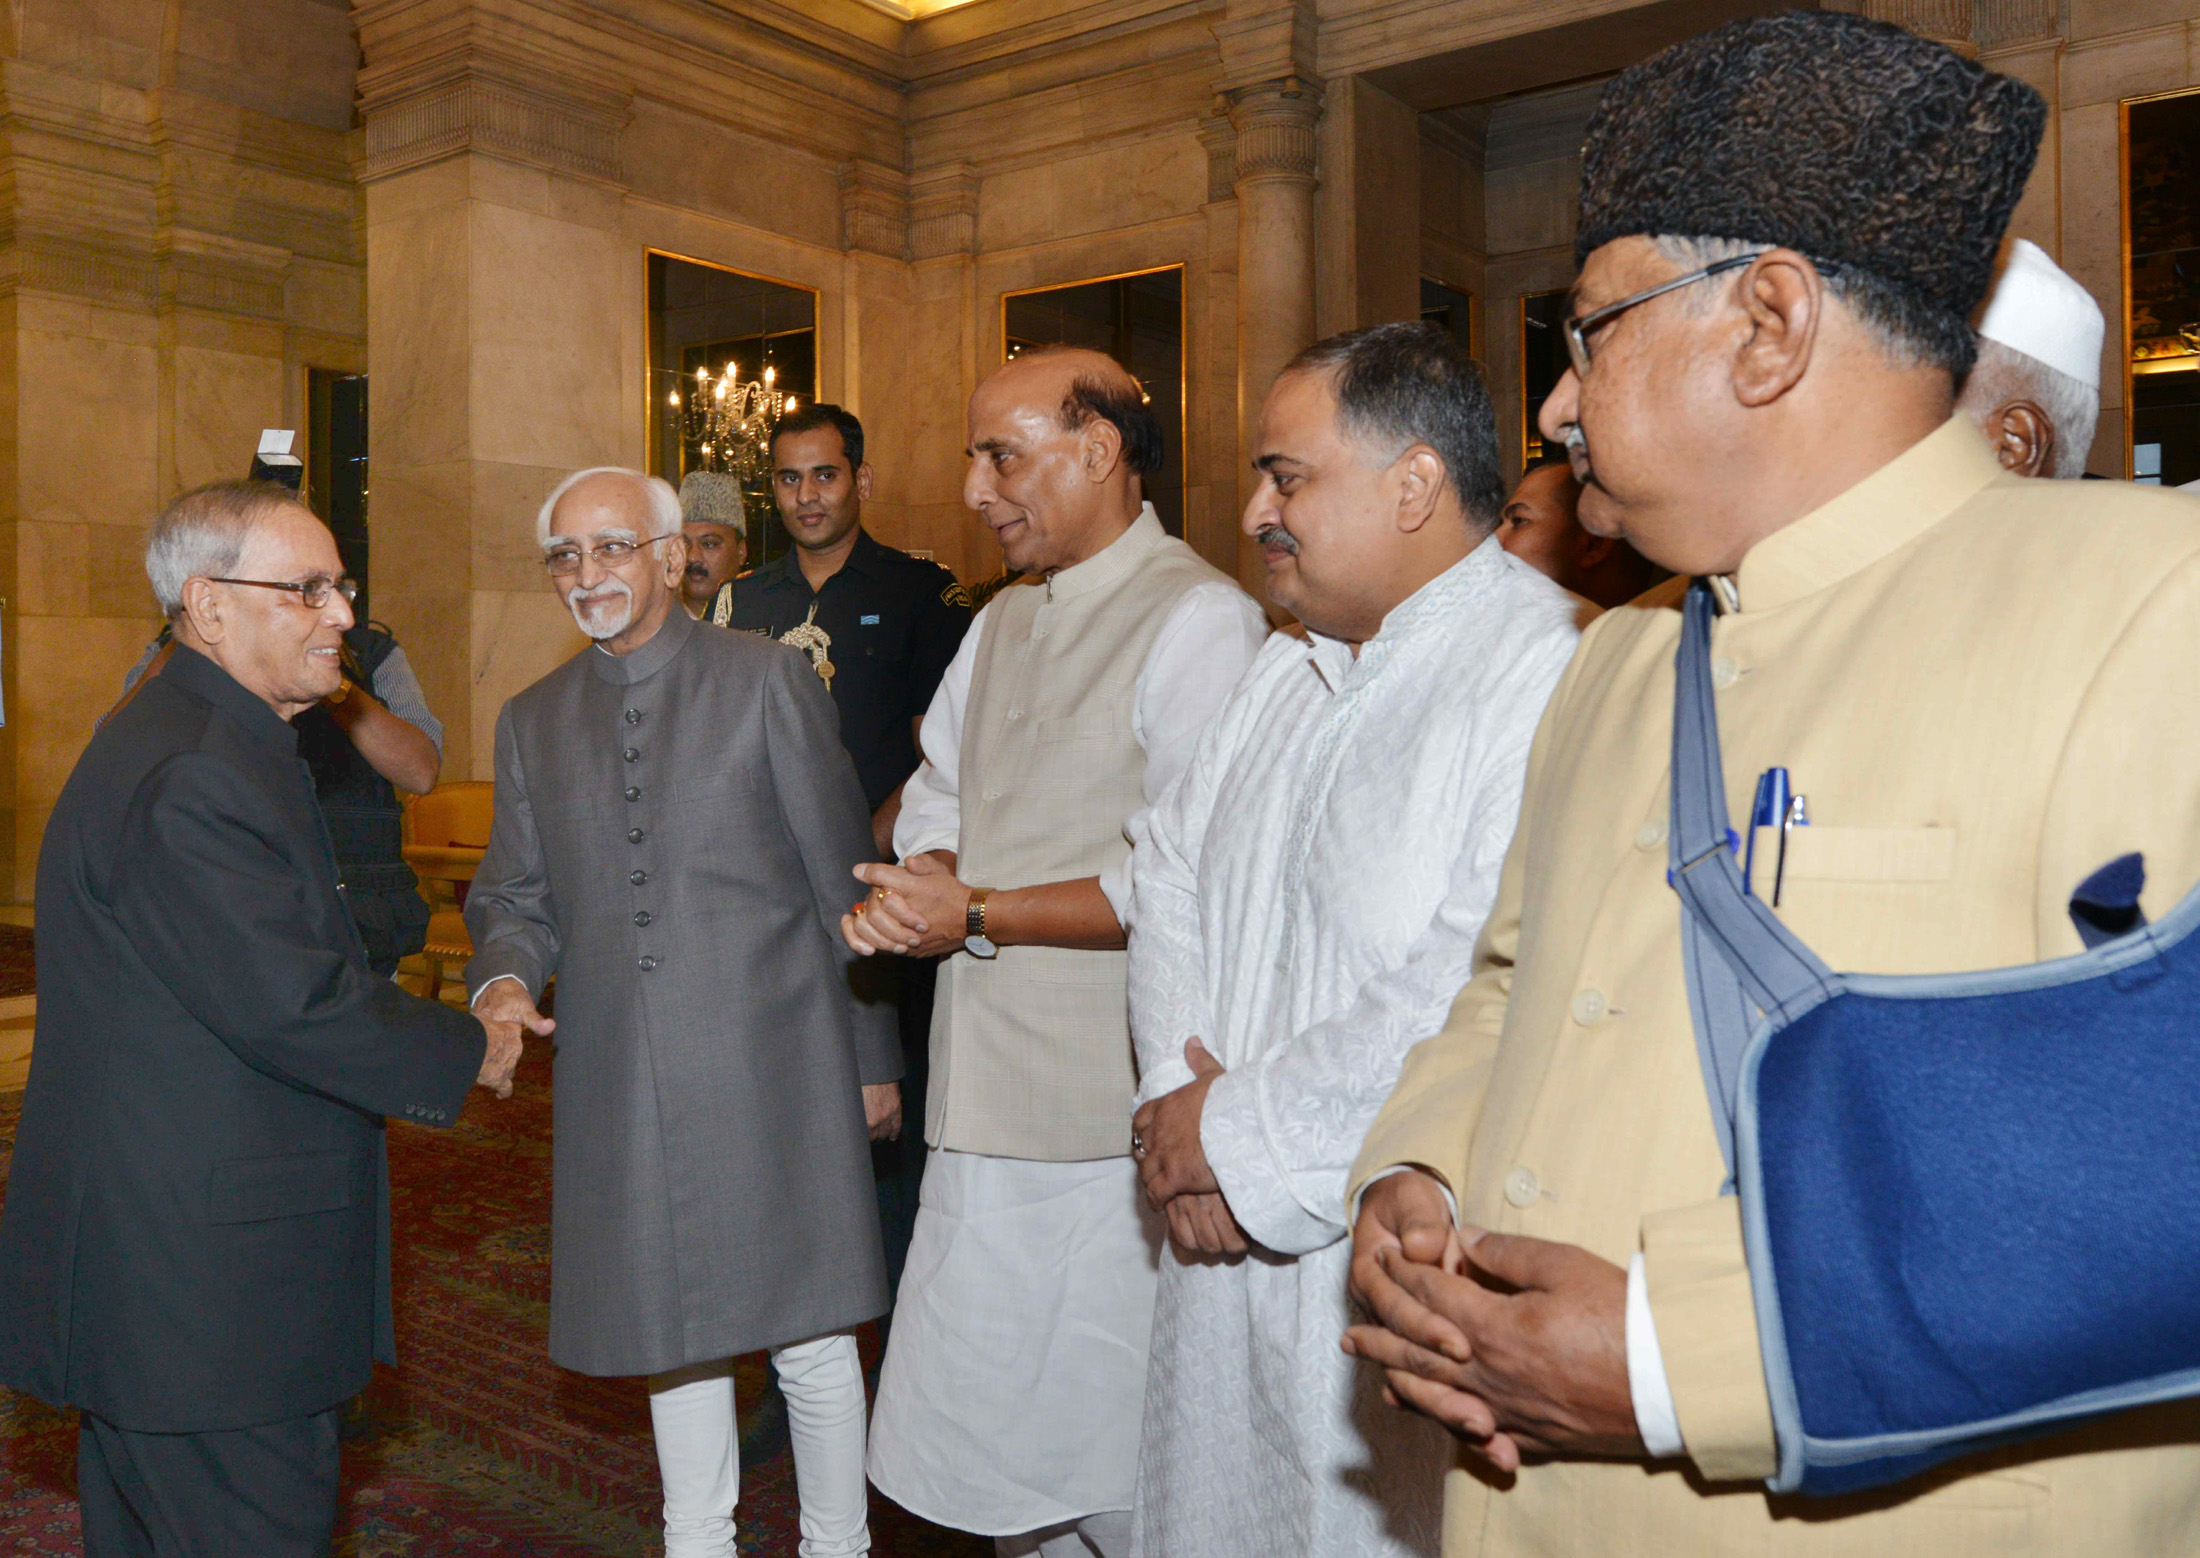 The President, Shri Pranab Mukherjee meeting the Vice President, Shri Mohd. Hamid Ansari, at an Iftar party, hosted by him, at Rashtrapati Bhavan, in New Delhi on July 15, 2015. The Union Home Minister, Shri Rajnath Singh dignitaries are also seen.